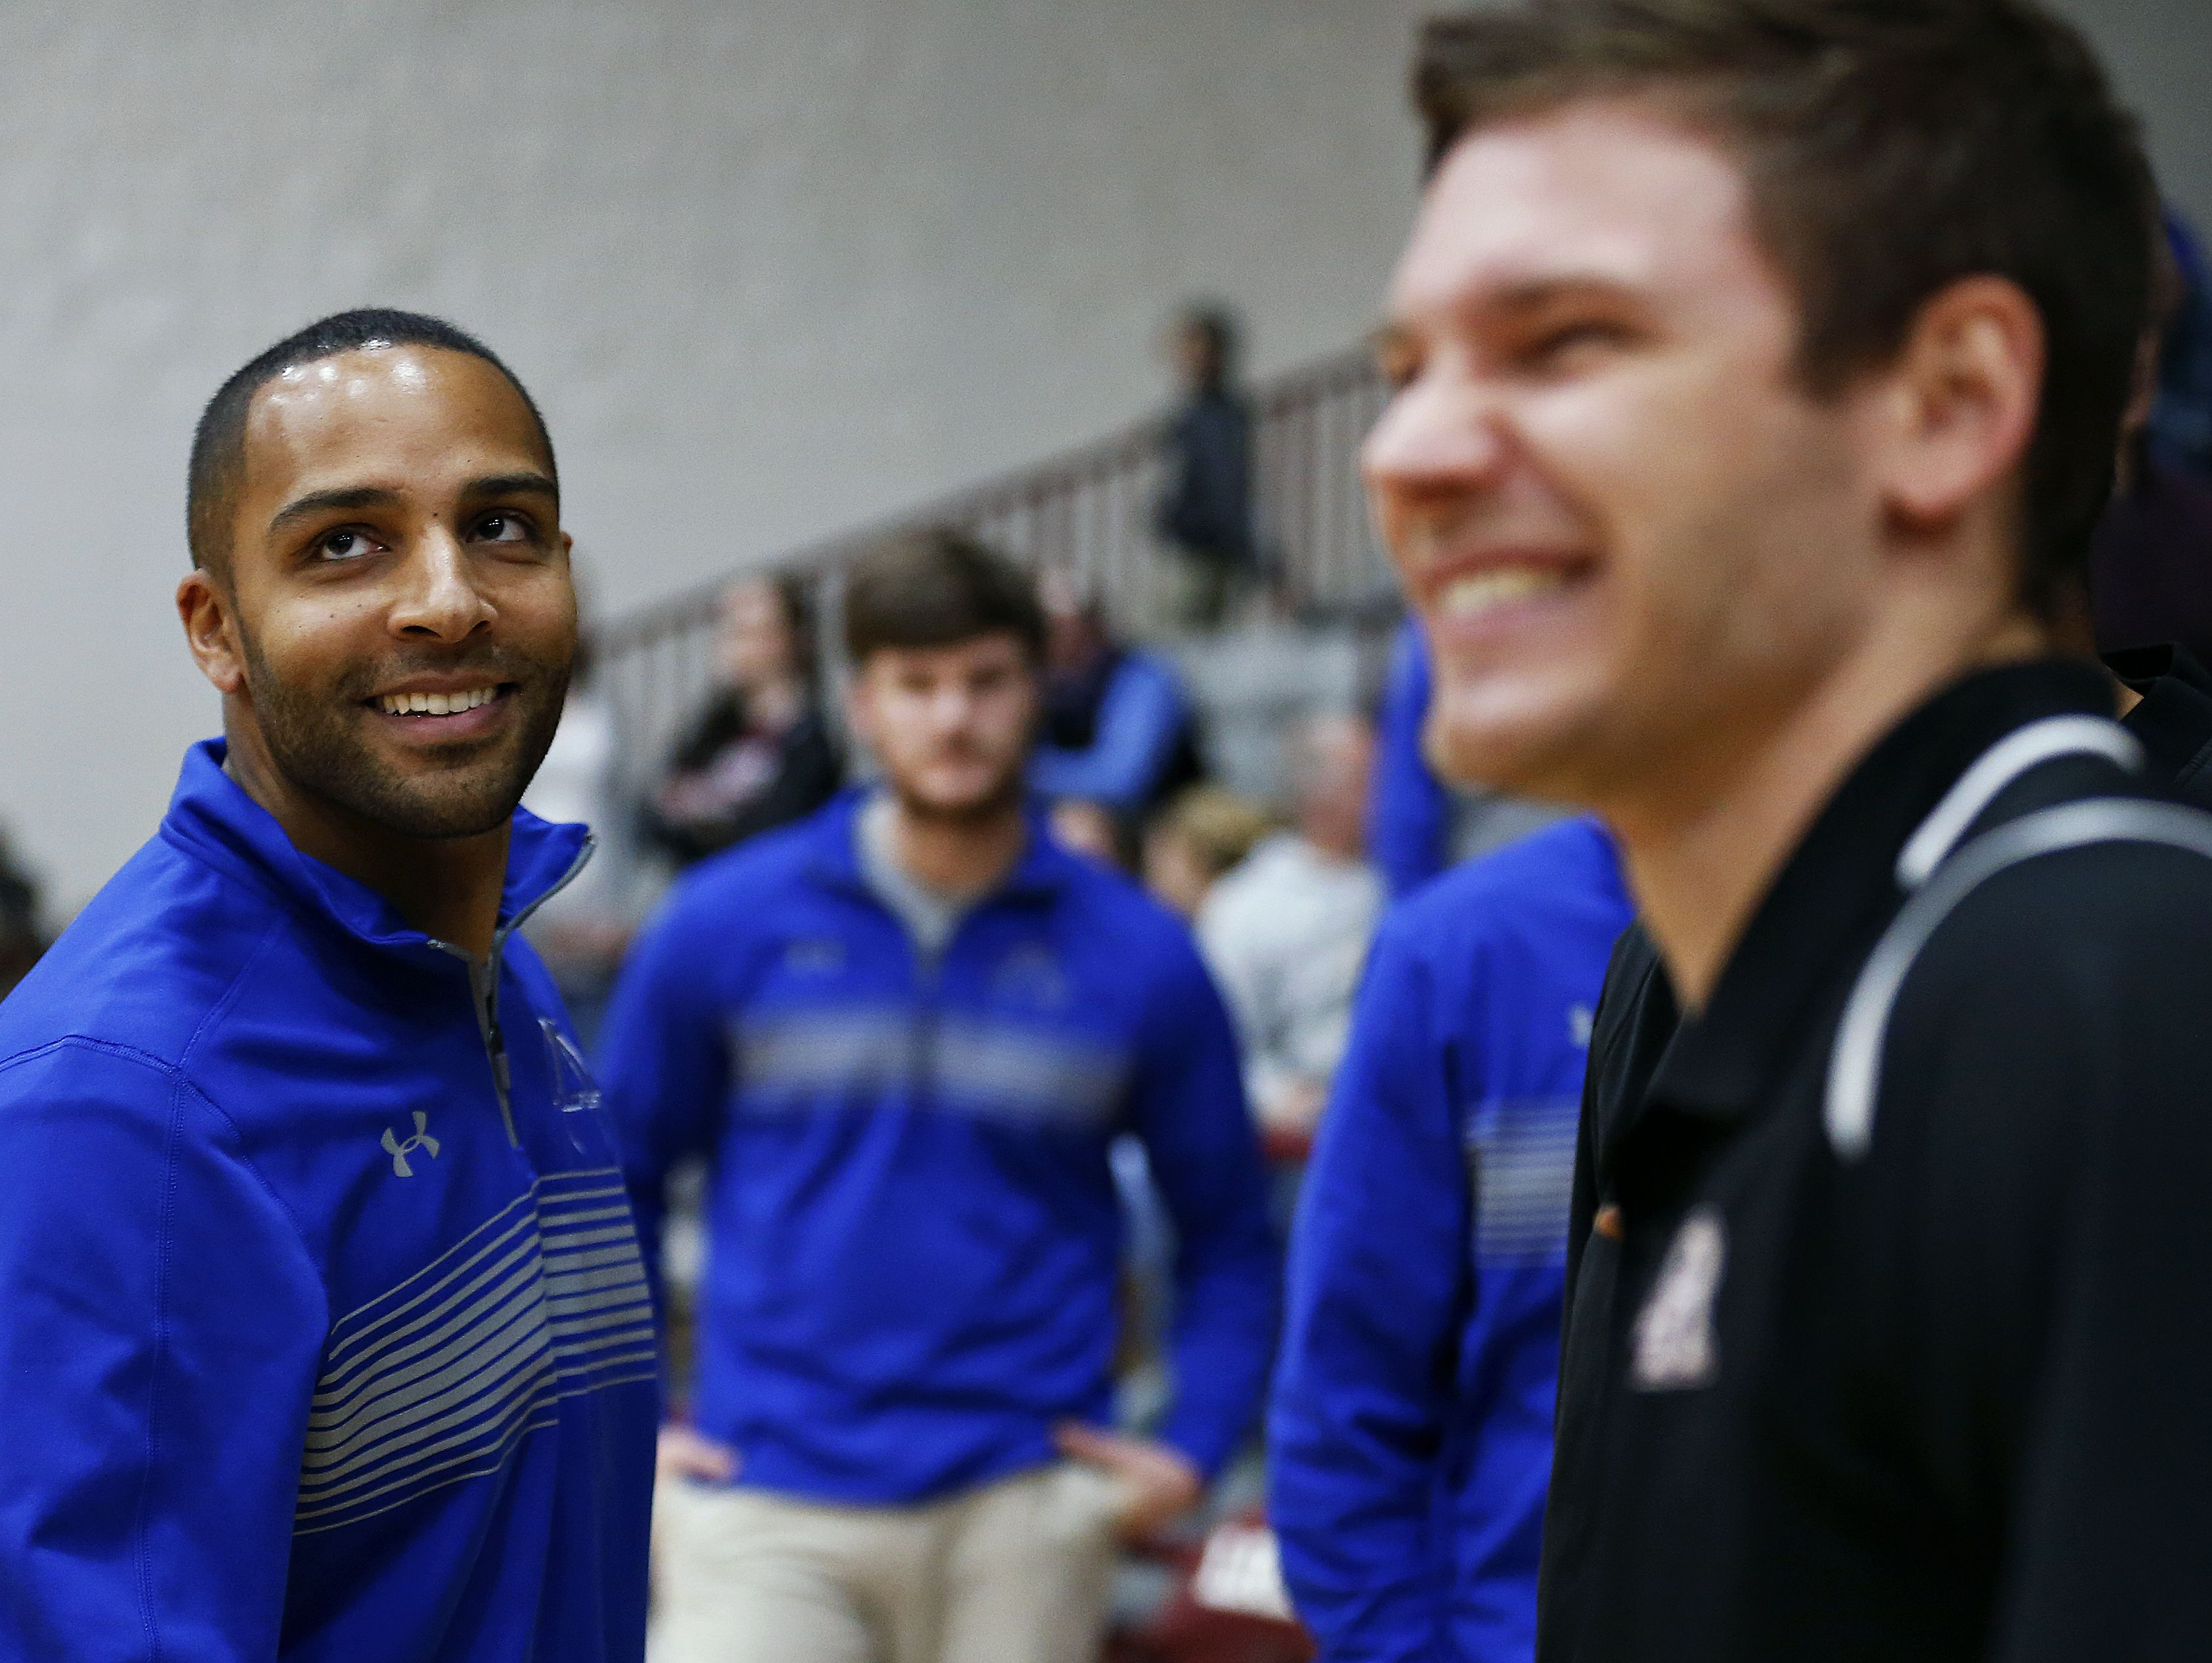 Hillcrest Hornets head coach Joel Brown, left, and Logan Rogersville Wildcats head coach Mitch McHenry share a laugh prior to the start of the high school basketball game between the Hillcrest Hornets and the Logan-Rogersville Wildcats at Logan-Rogersville High School in Rogersville, Mo. on Dec. 20, 2016.